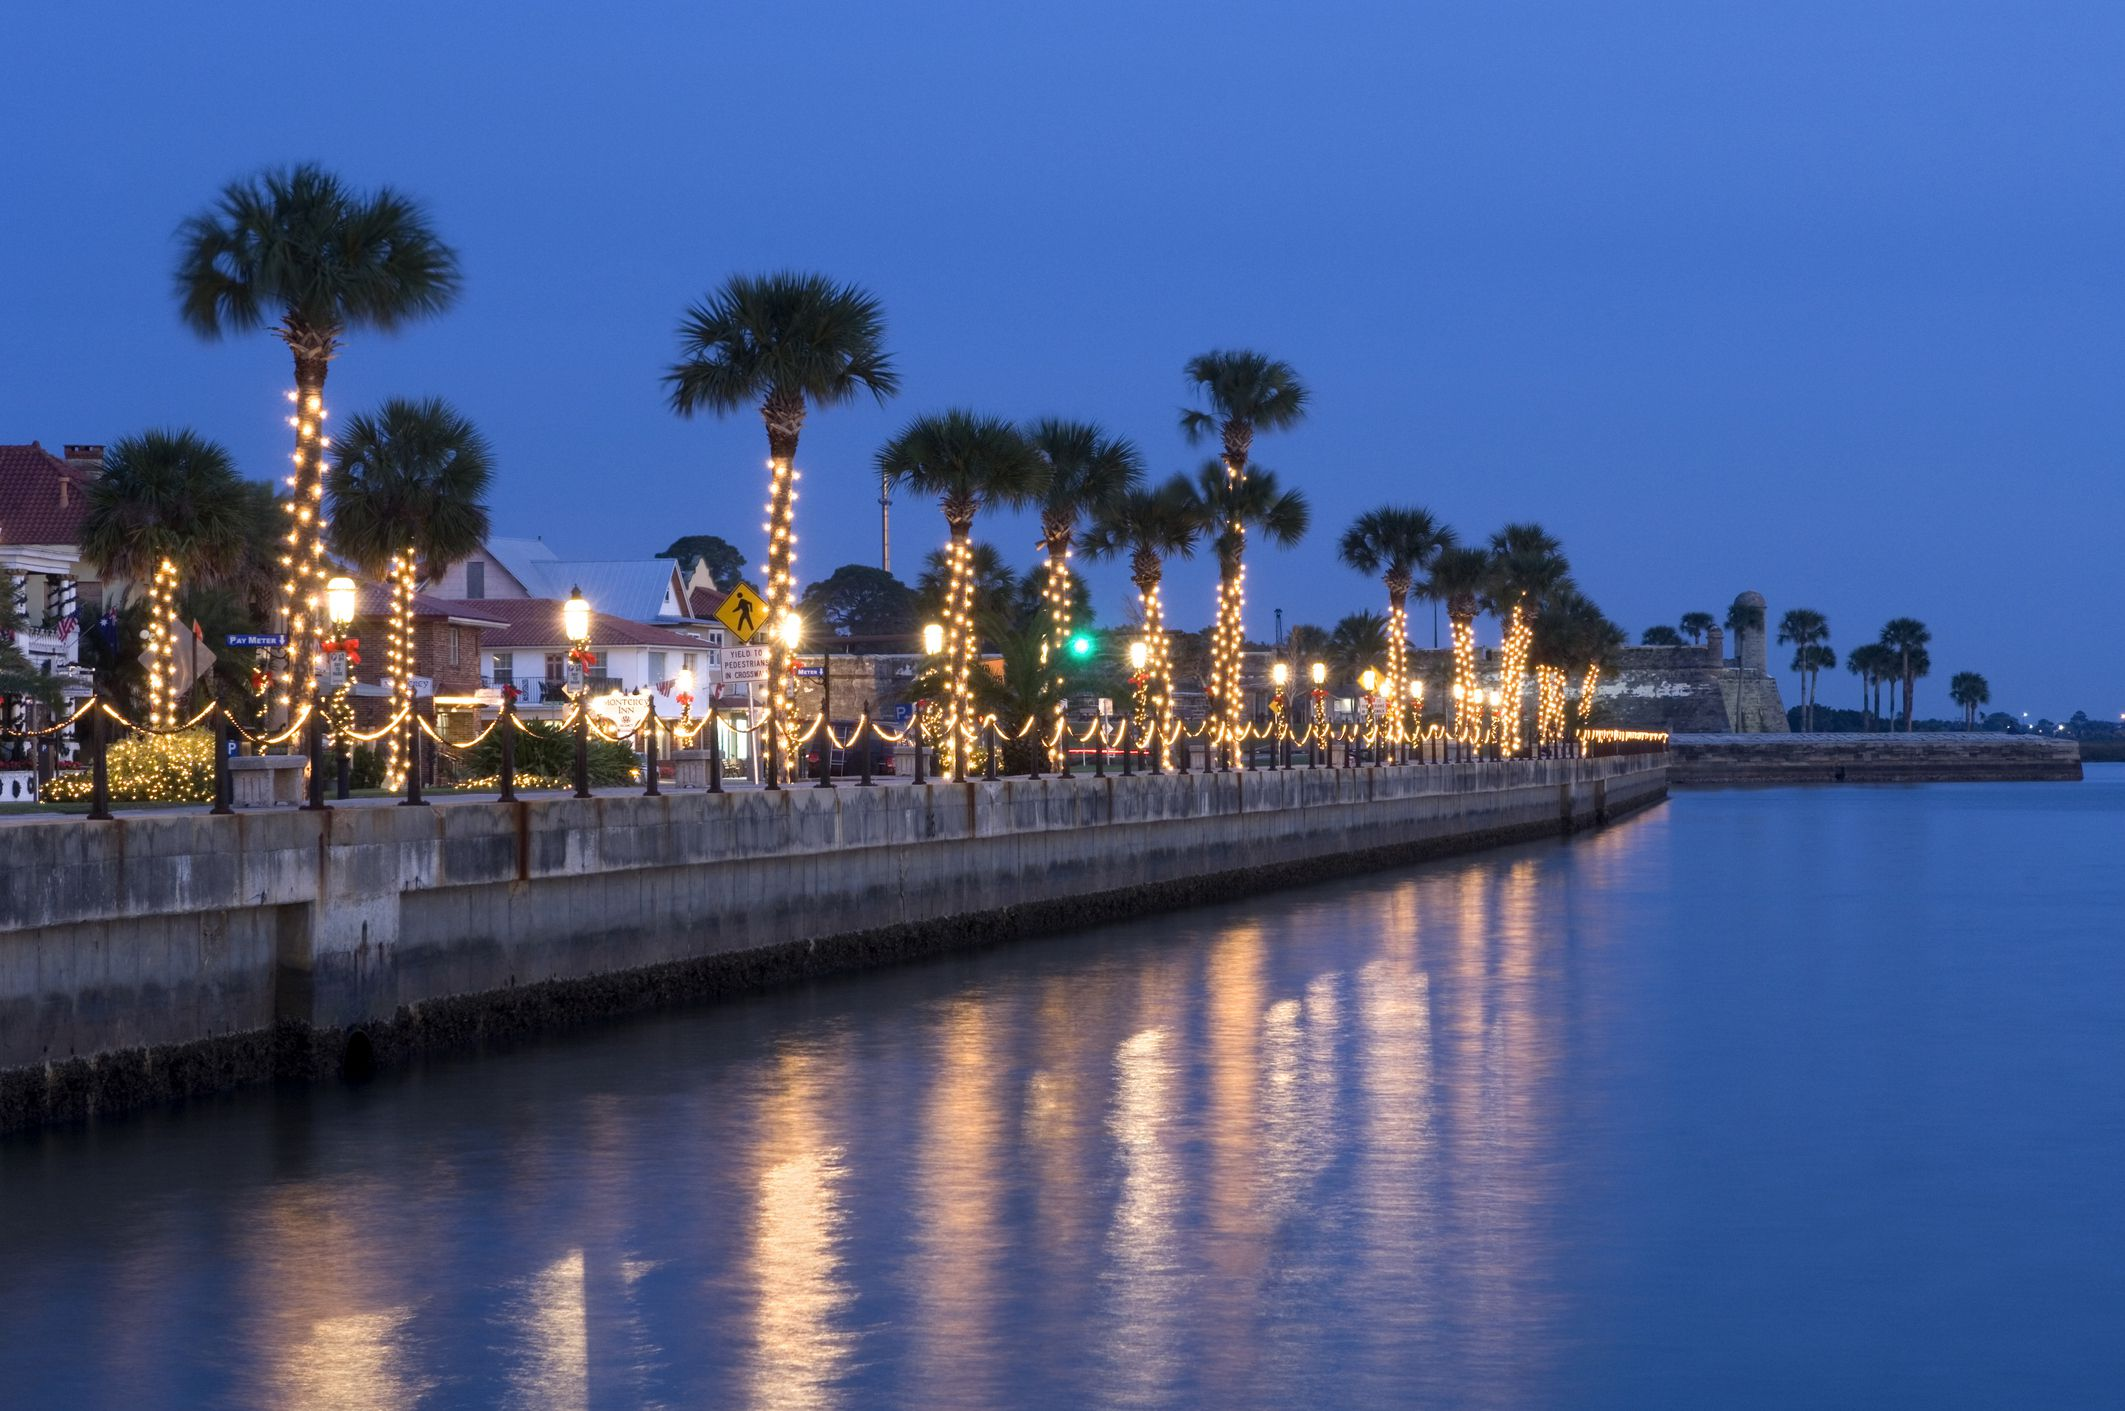 Celebrate Christmas in Florida